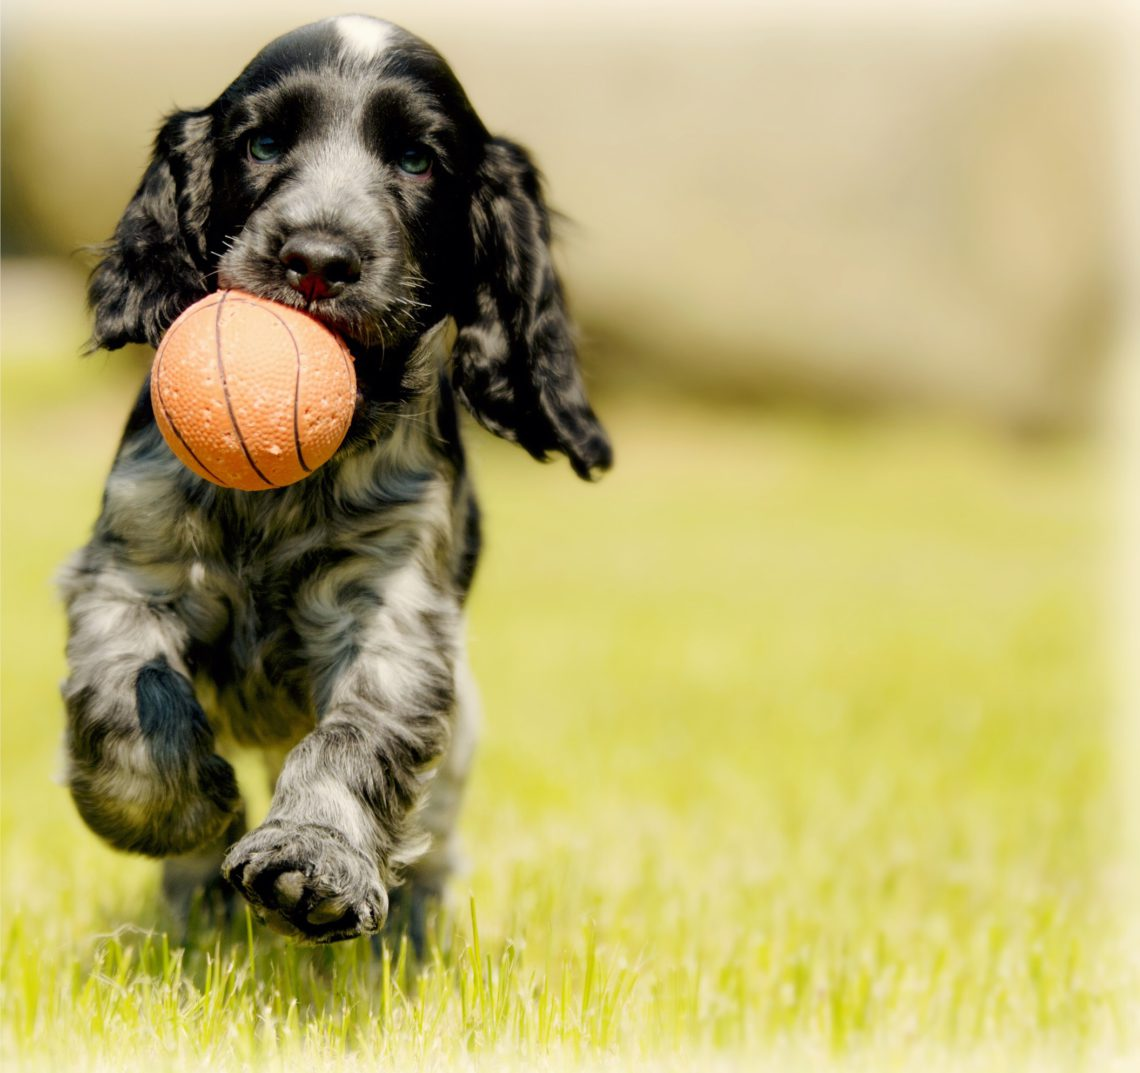 photo of a dog playing with a rubber ball